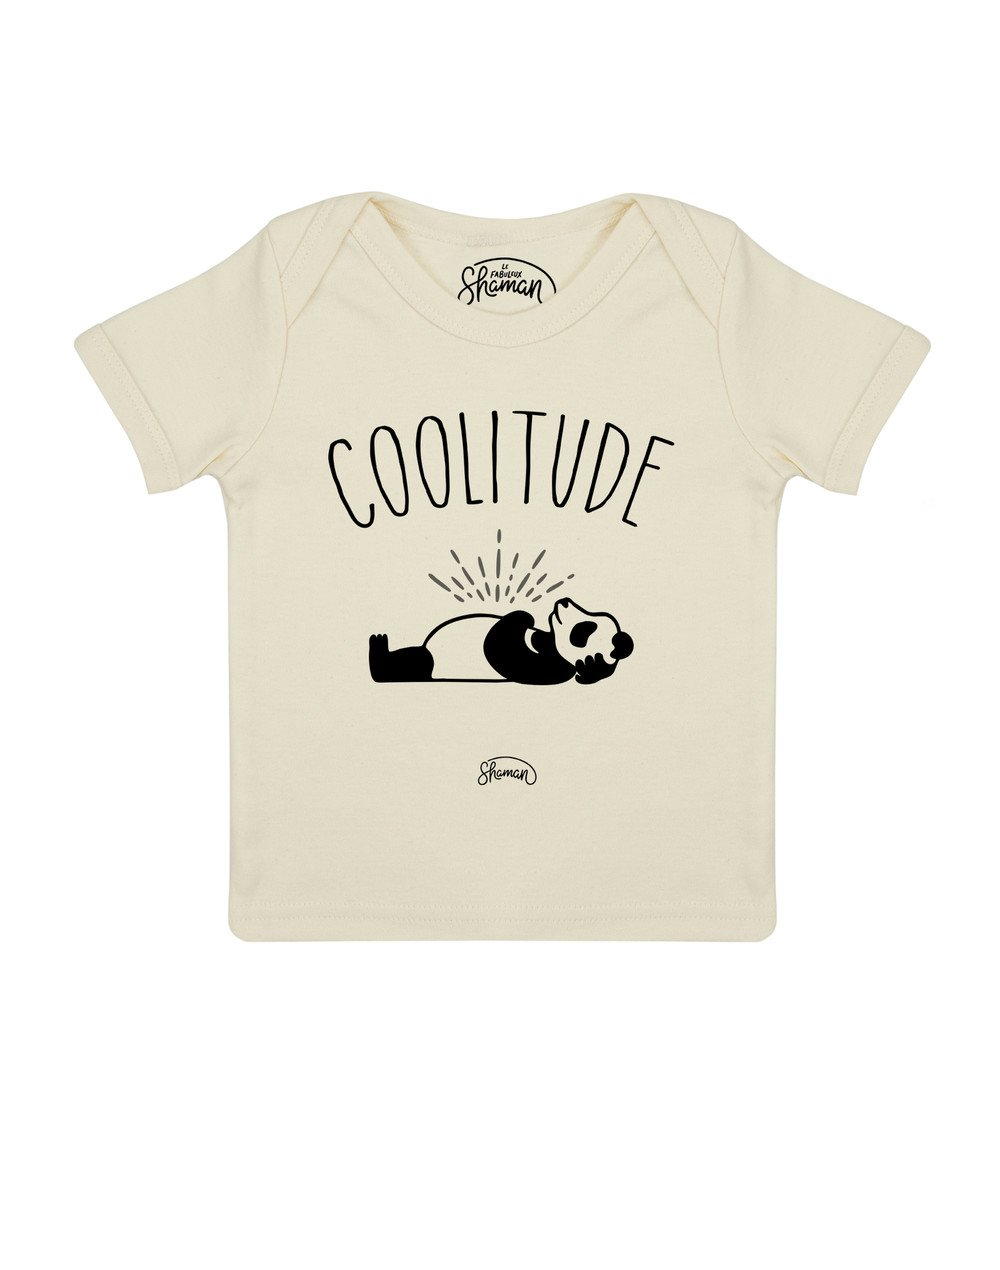 Tee shirt Coolitude